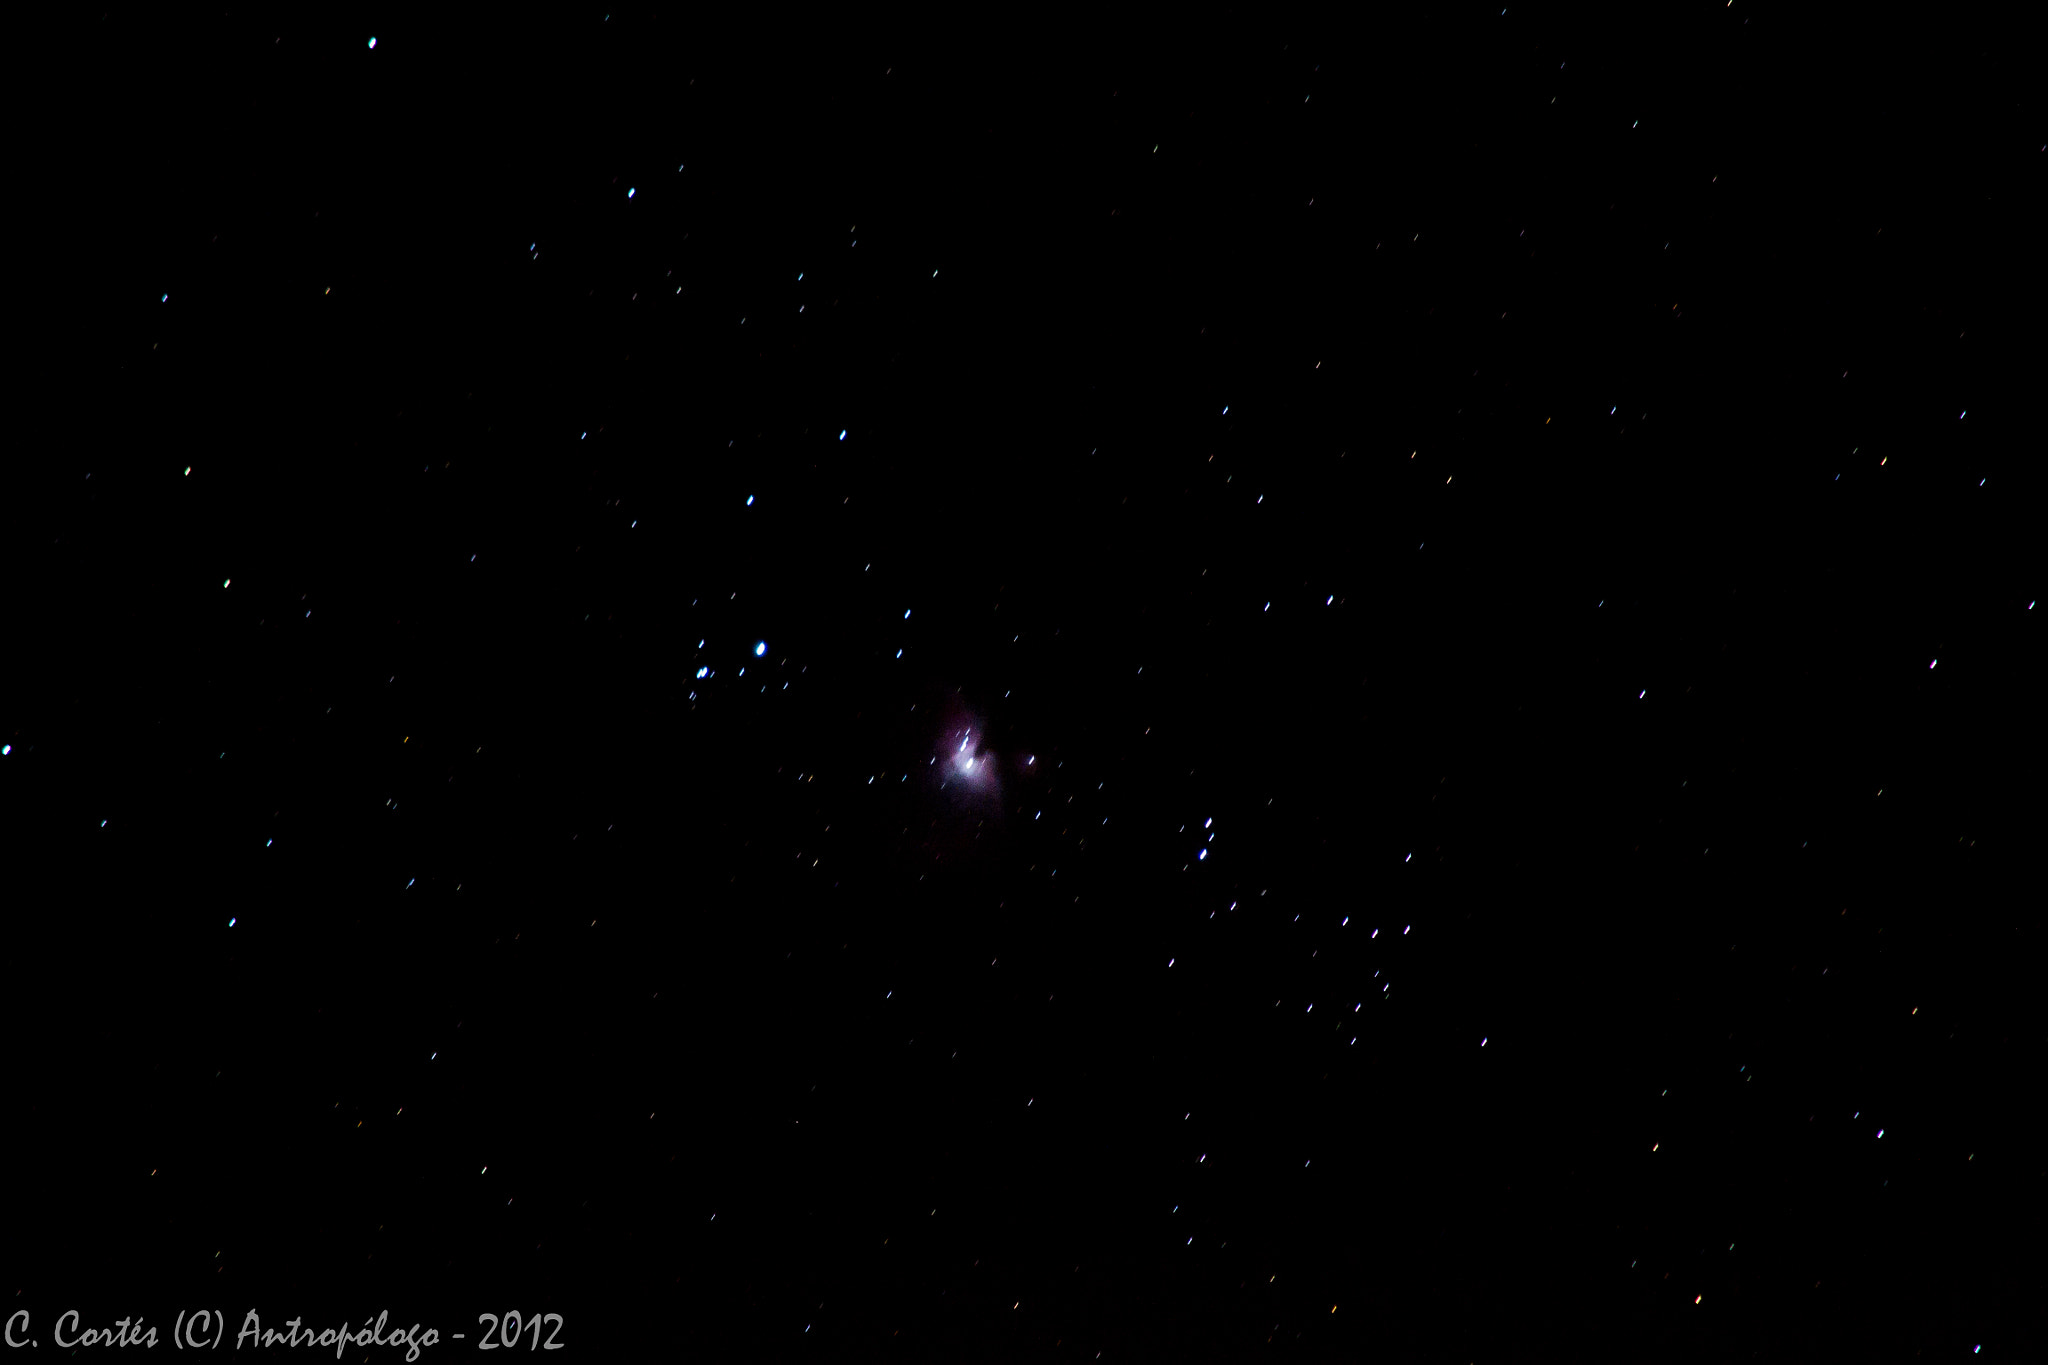 Photograph Nebulosa de Orion. by Claudio Cortes on 500px